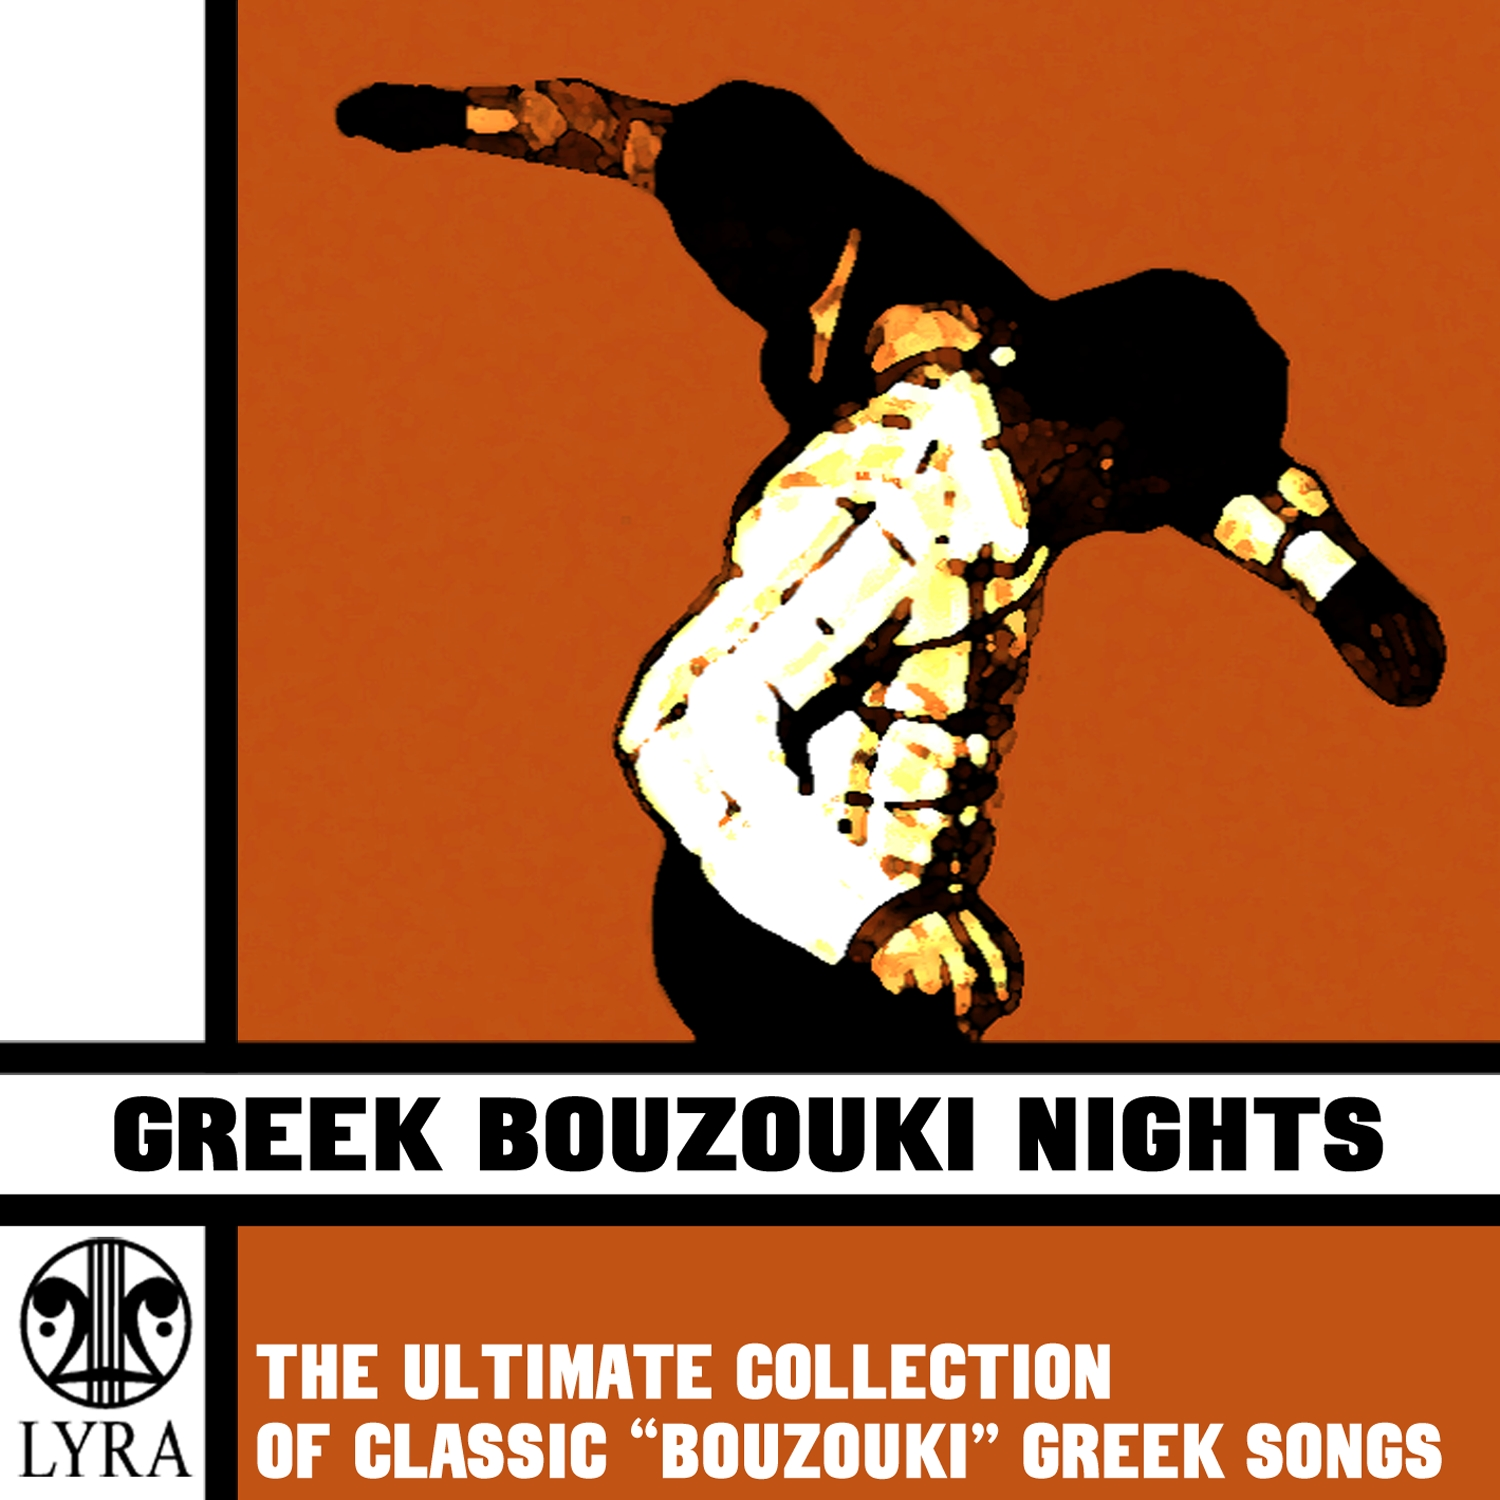 Greek Bouzouki Nights - The Ultimate Collection of Classic